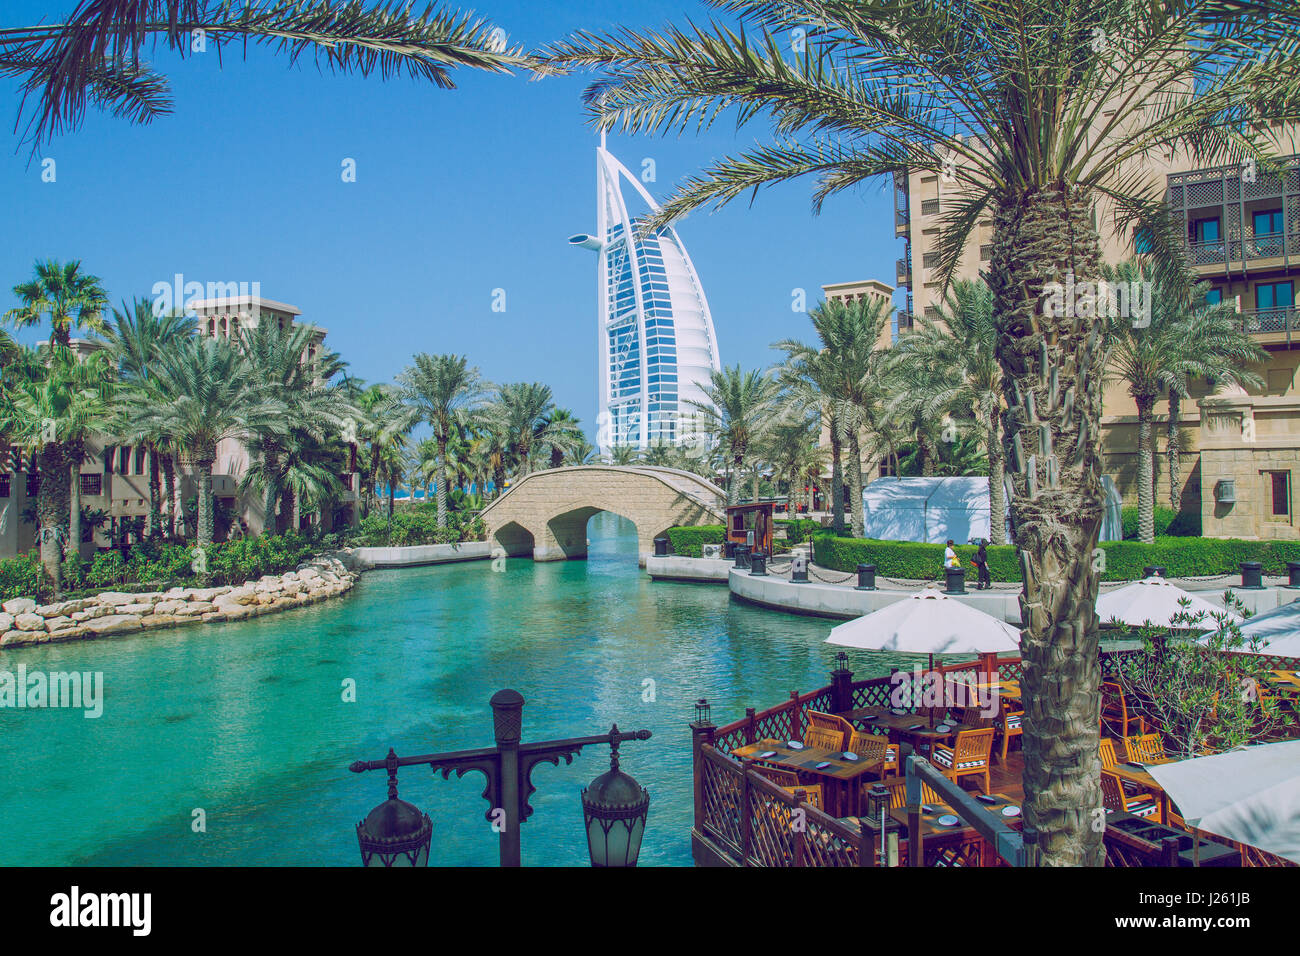 11 03 2015 stock photos 11 03 2015 stock images alamy for The largest hotel in dubai